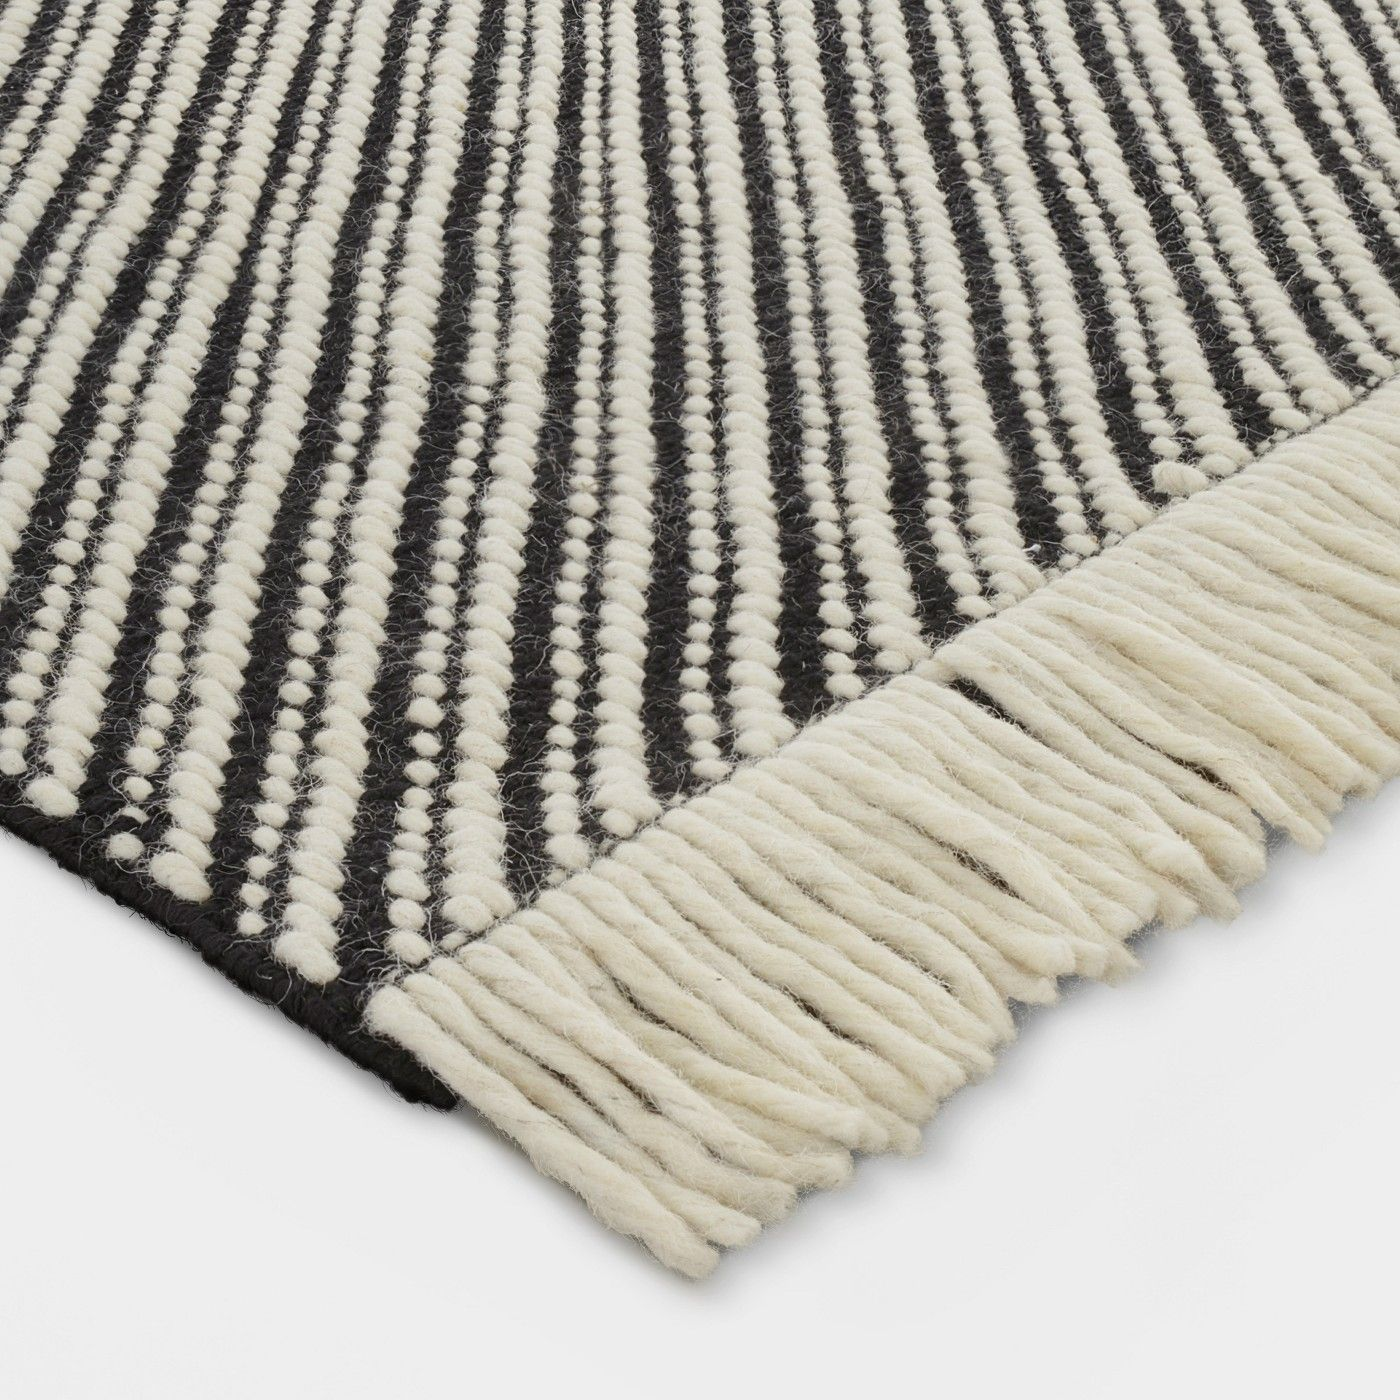 Black White Zig Zag Woven Area Rug 7 X10 Project 62 In